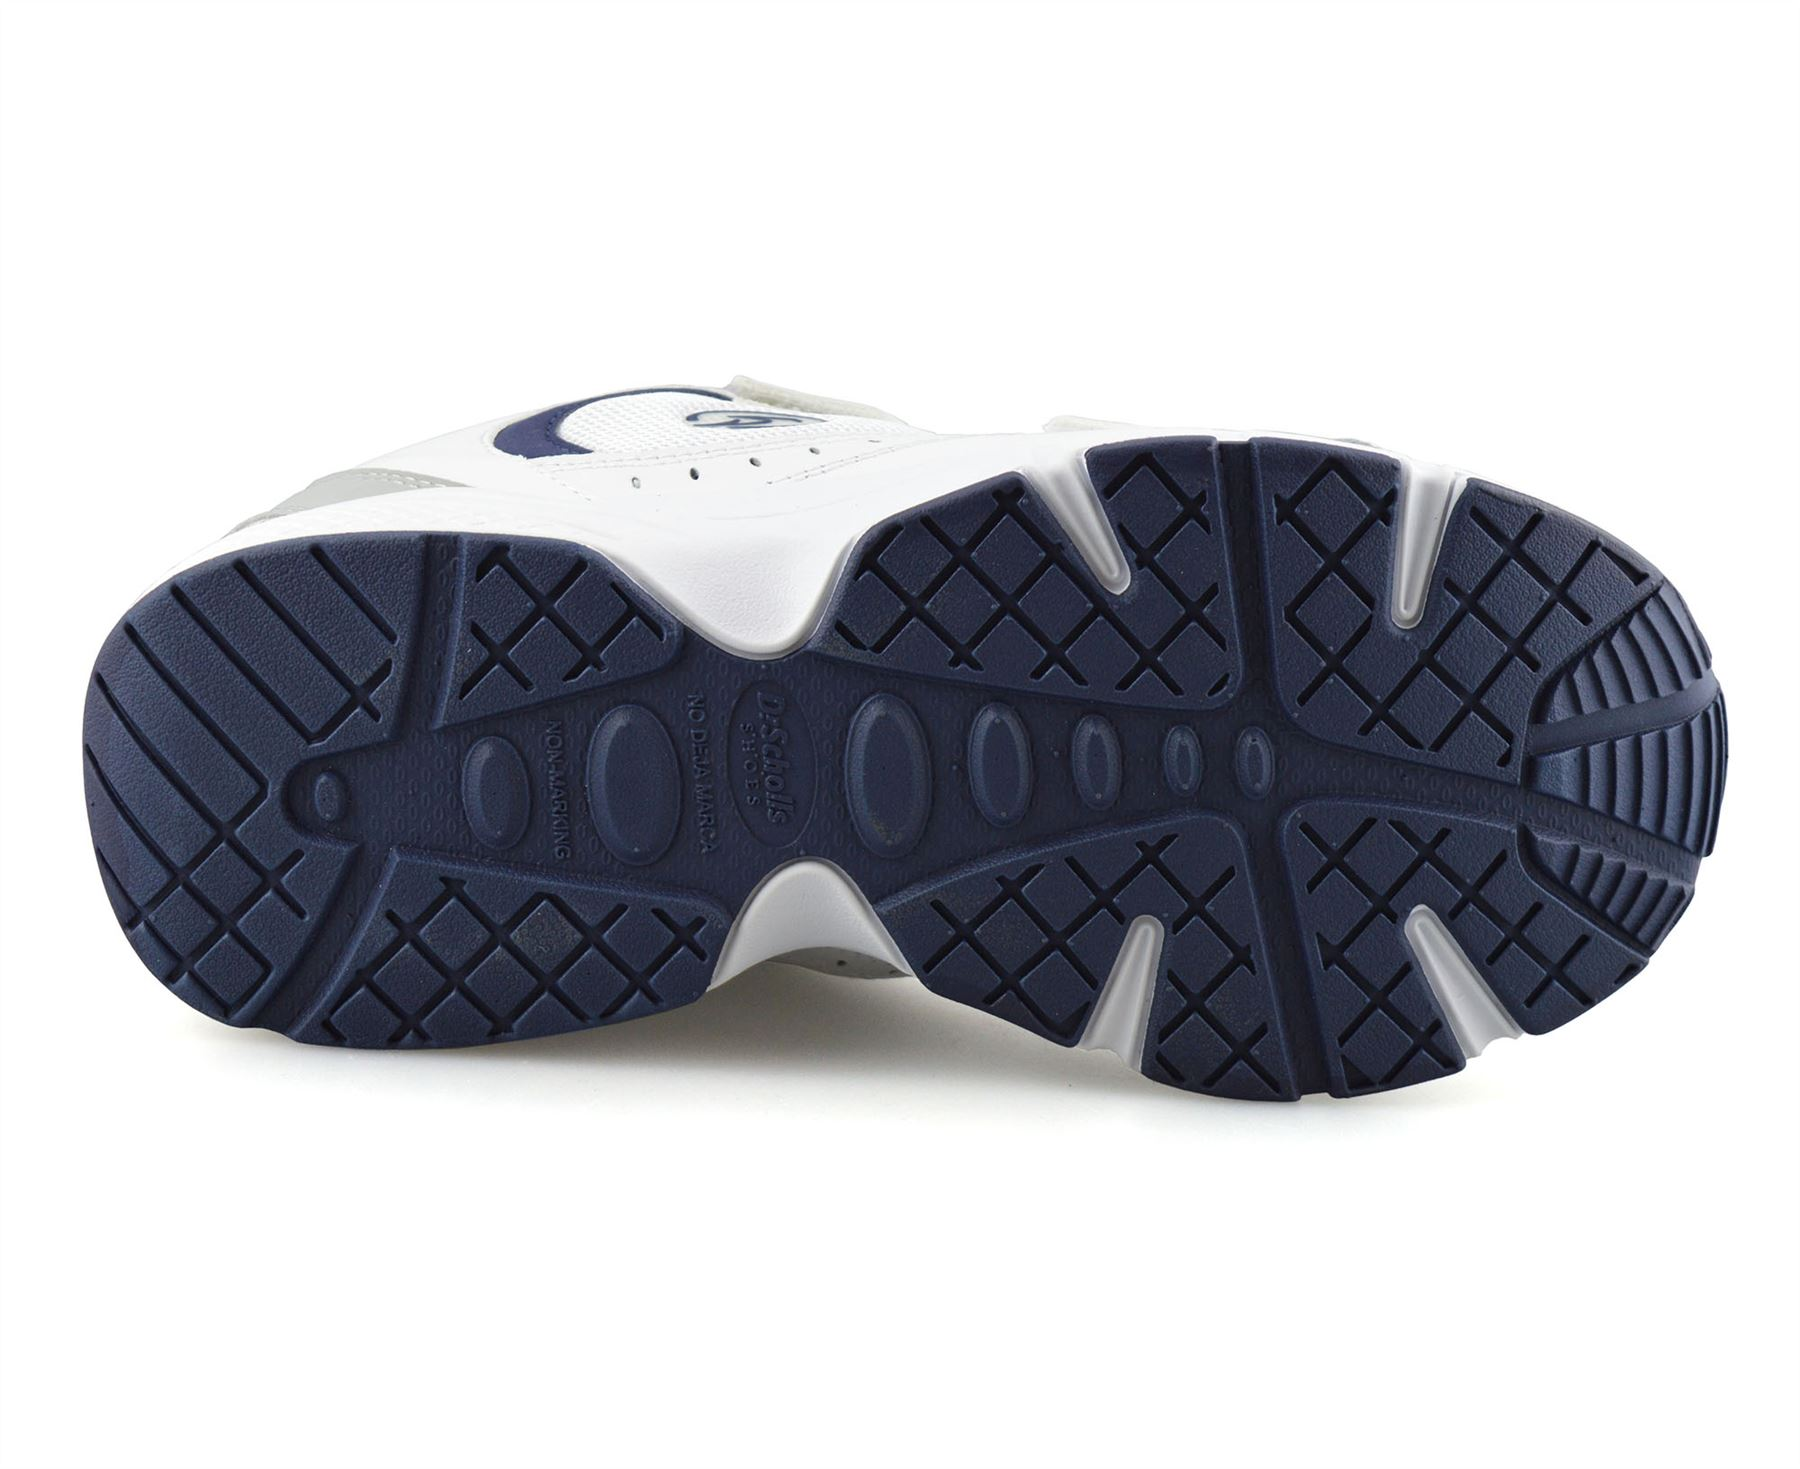 Mens-Dr-Scholls-Wide-Fit-Leather-Casual-Walking-Gym-Comfort-Trainers-Shoes-Size thumbnail 13